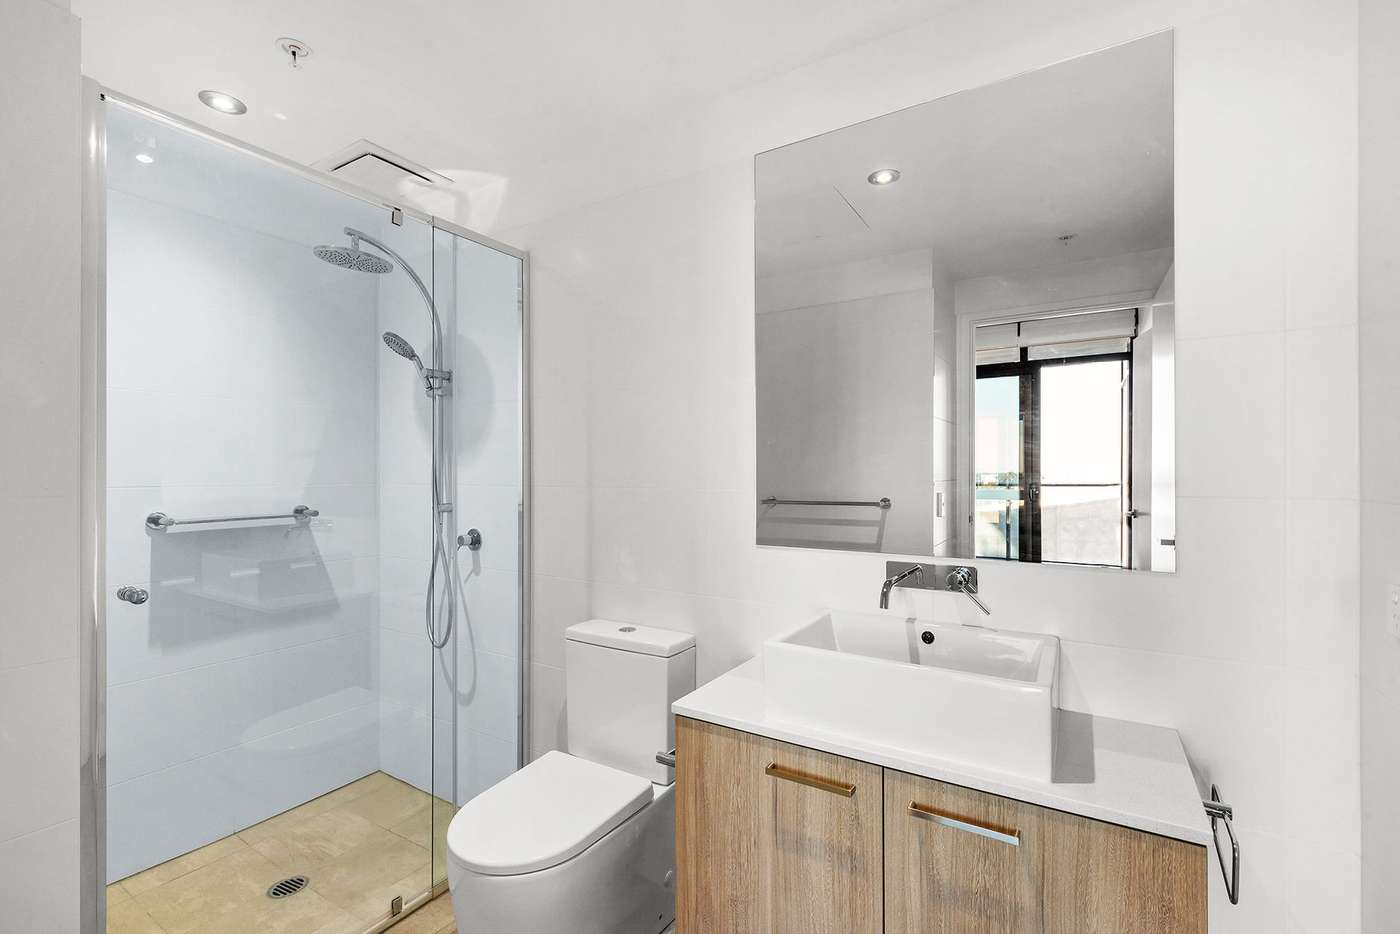 Sixth view of Homely apartment listing, 307/68 Elizabeth Street, Adelaide SA 5000